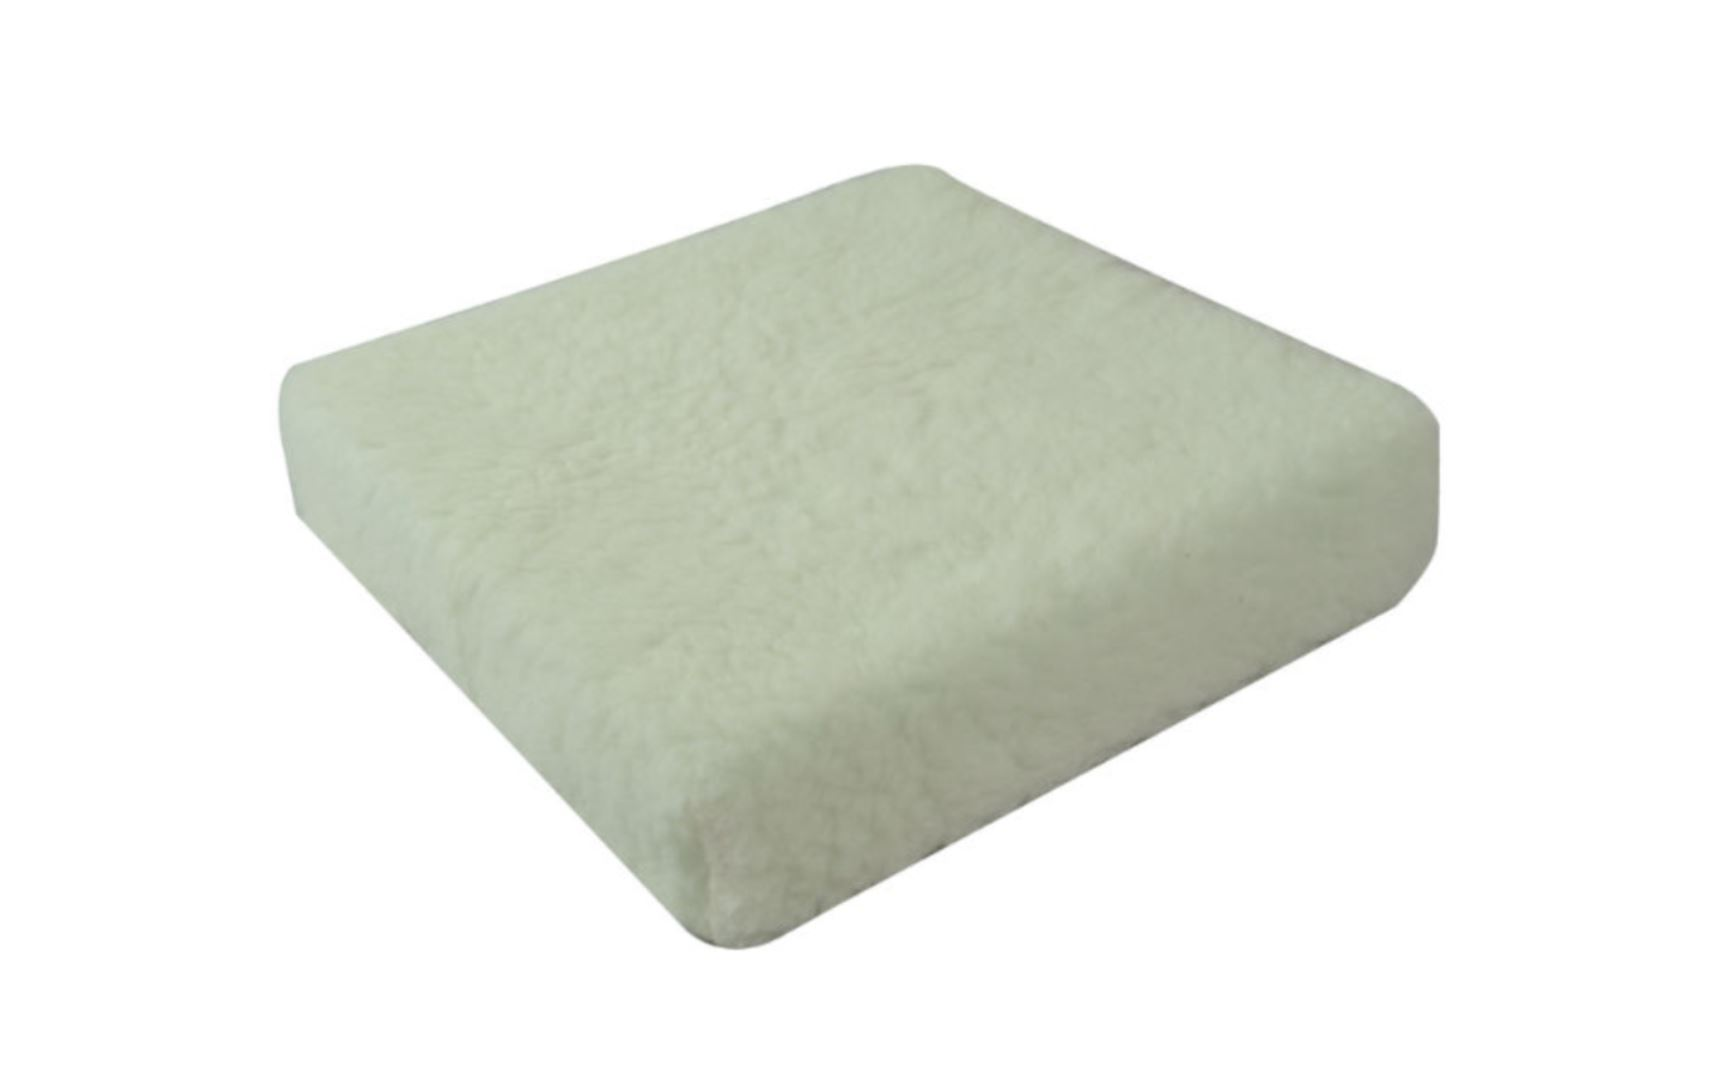 Luxury Fleece Wheelchair Cushion which is a warm fleece material.